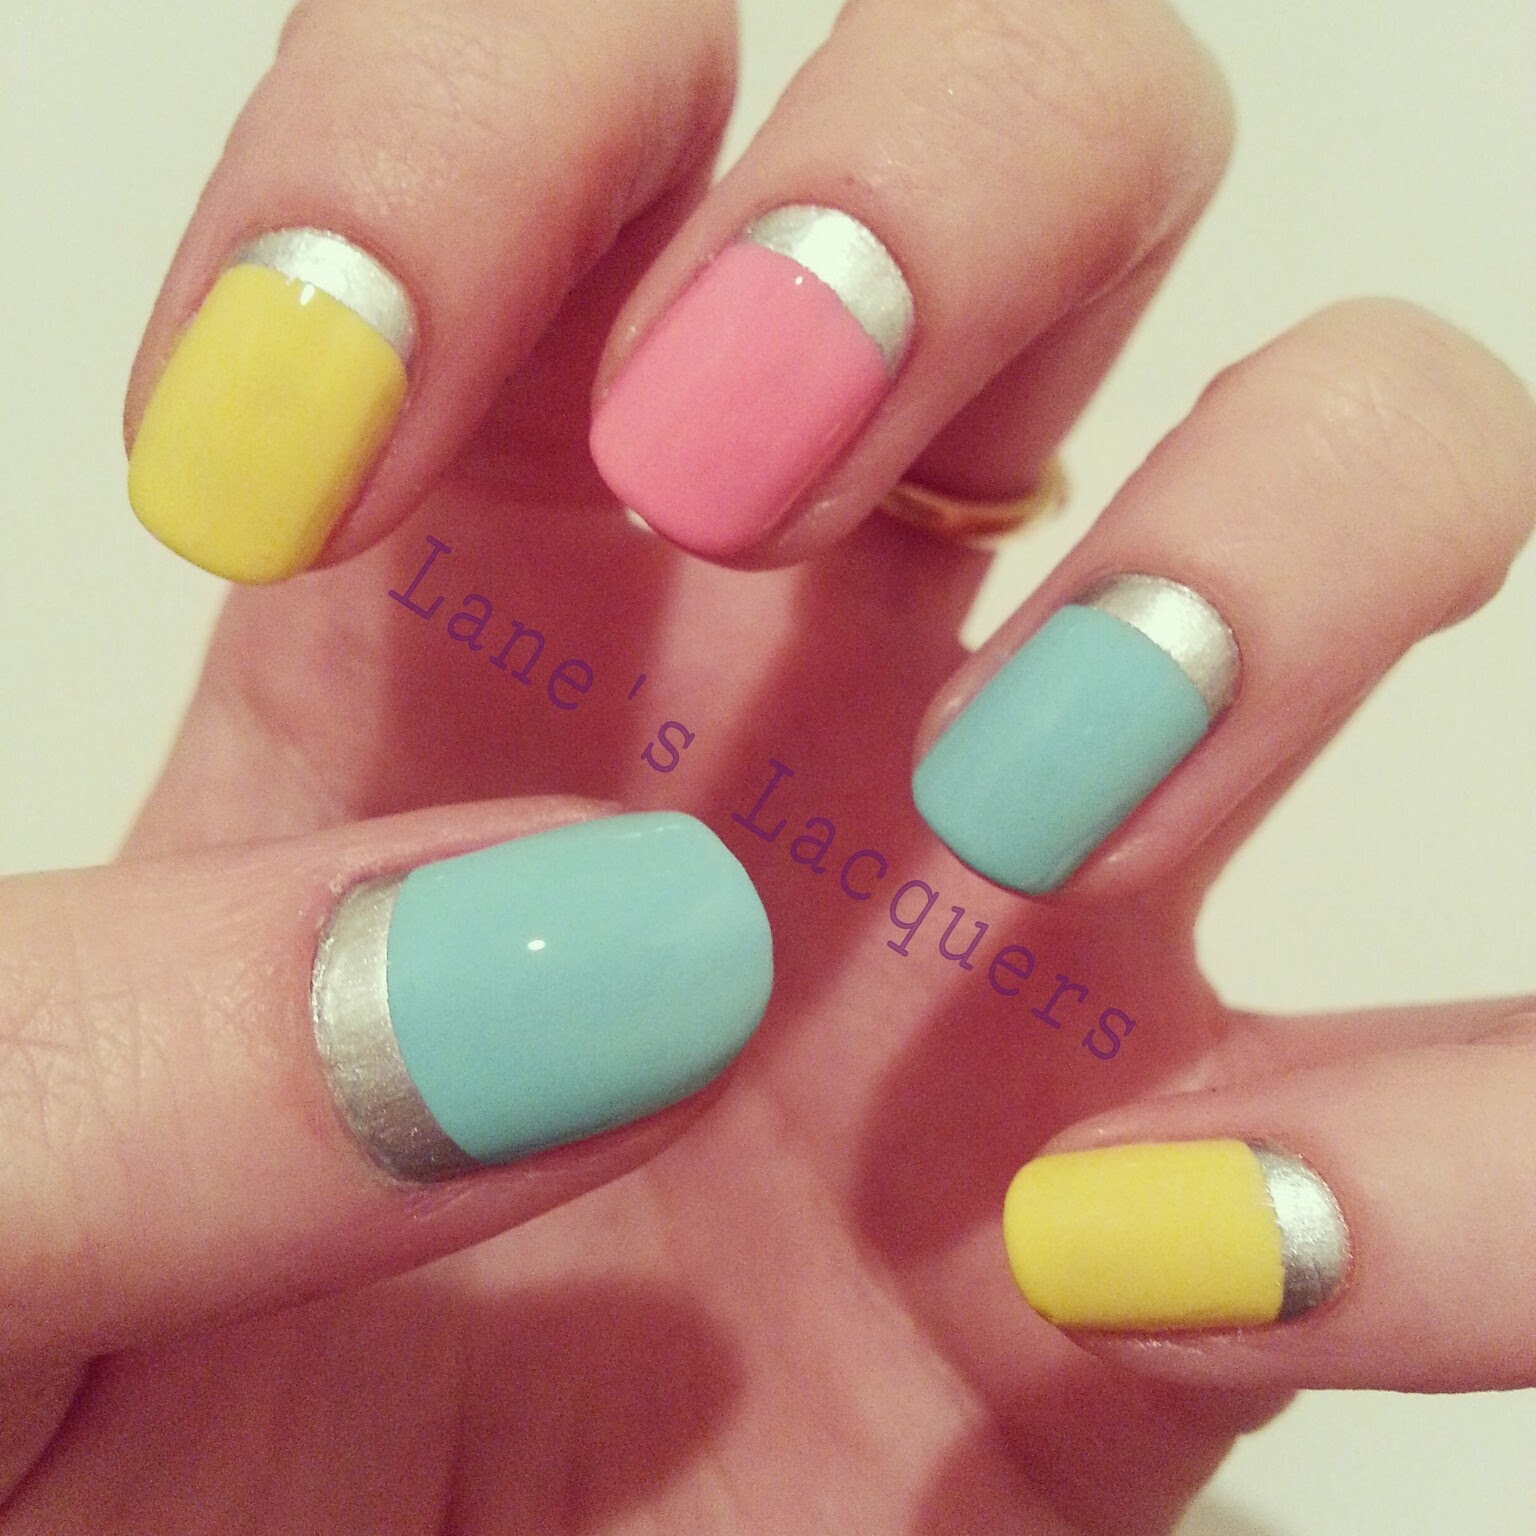 tri-polish-challenge-pink-blue-yellow-pastel-nail-art